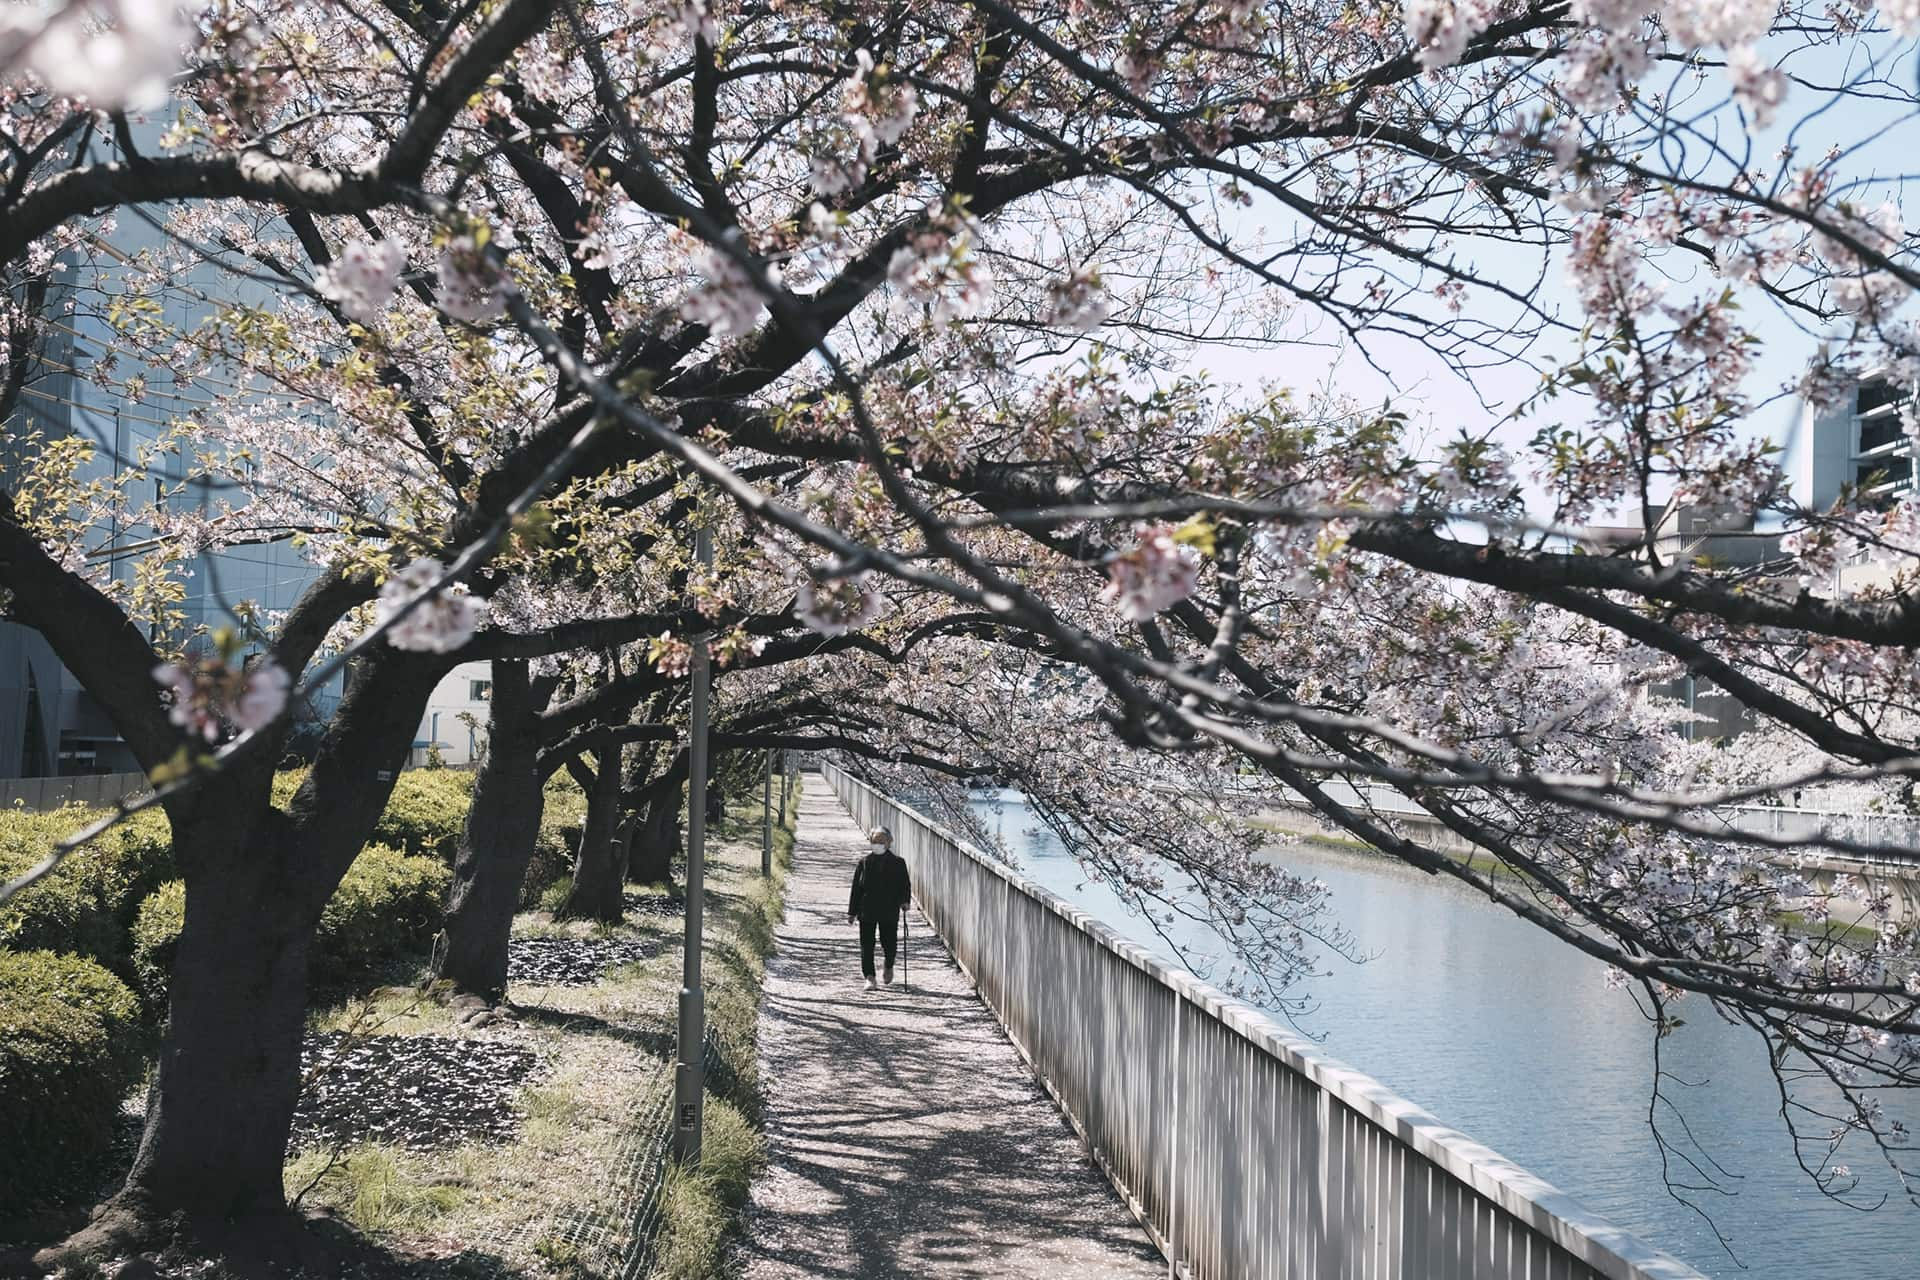 Effortless Fitness: Why there are no gyms in Japan